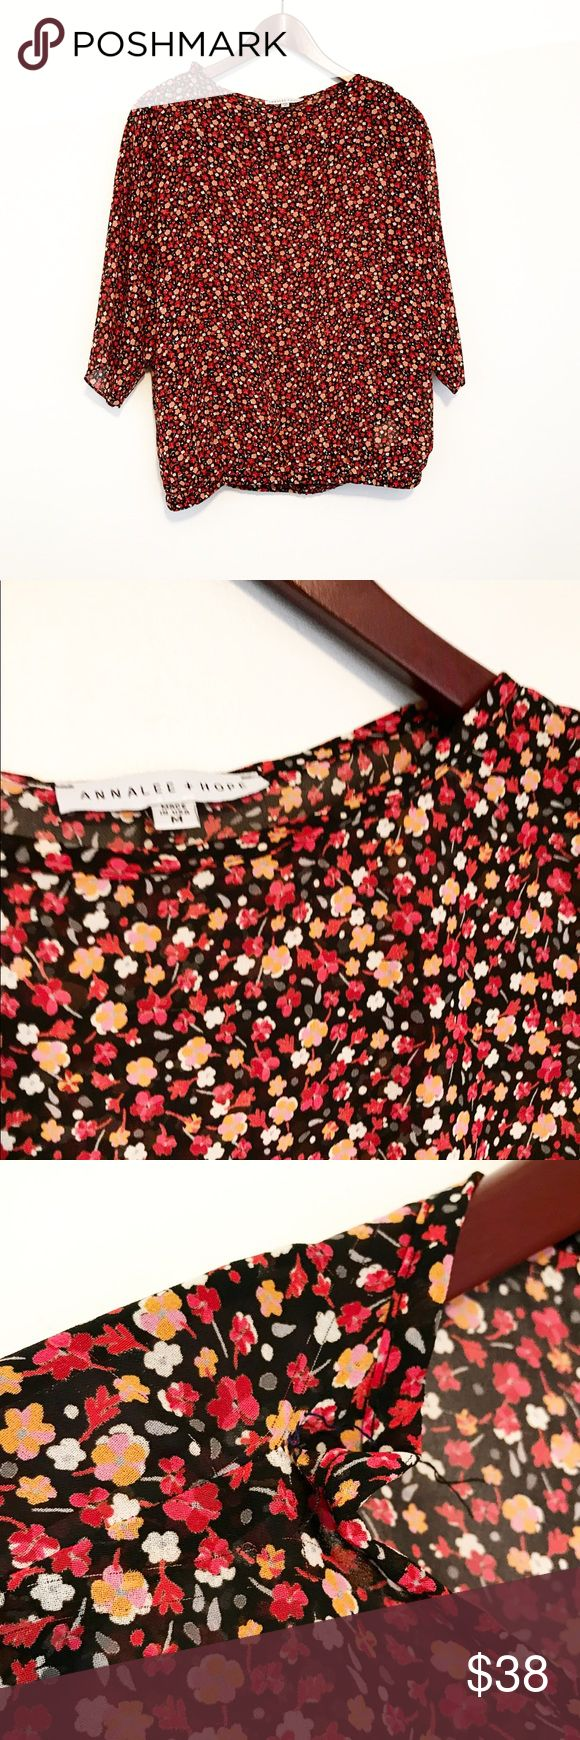 Red & Orange Floral Dolman Batwing Banded Blouse Super cute! I could totally see this paired with a leather mini and floppy black hat. Or a cream Lace skirt. It's very versatile. 🔥 The shoulders have been taken in a little, but it looks like removing that one thread would let them right back out. ❤️ Annalee + Hope Tops Blouses